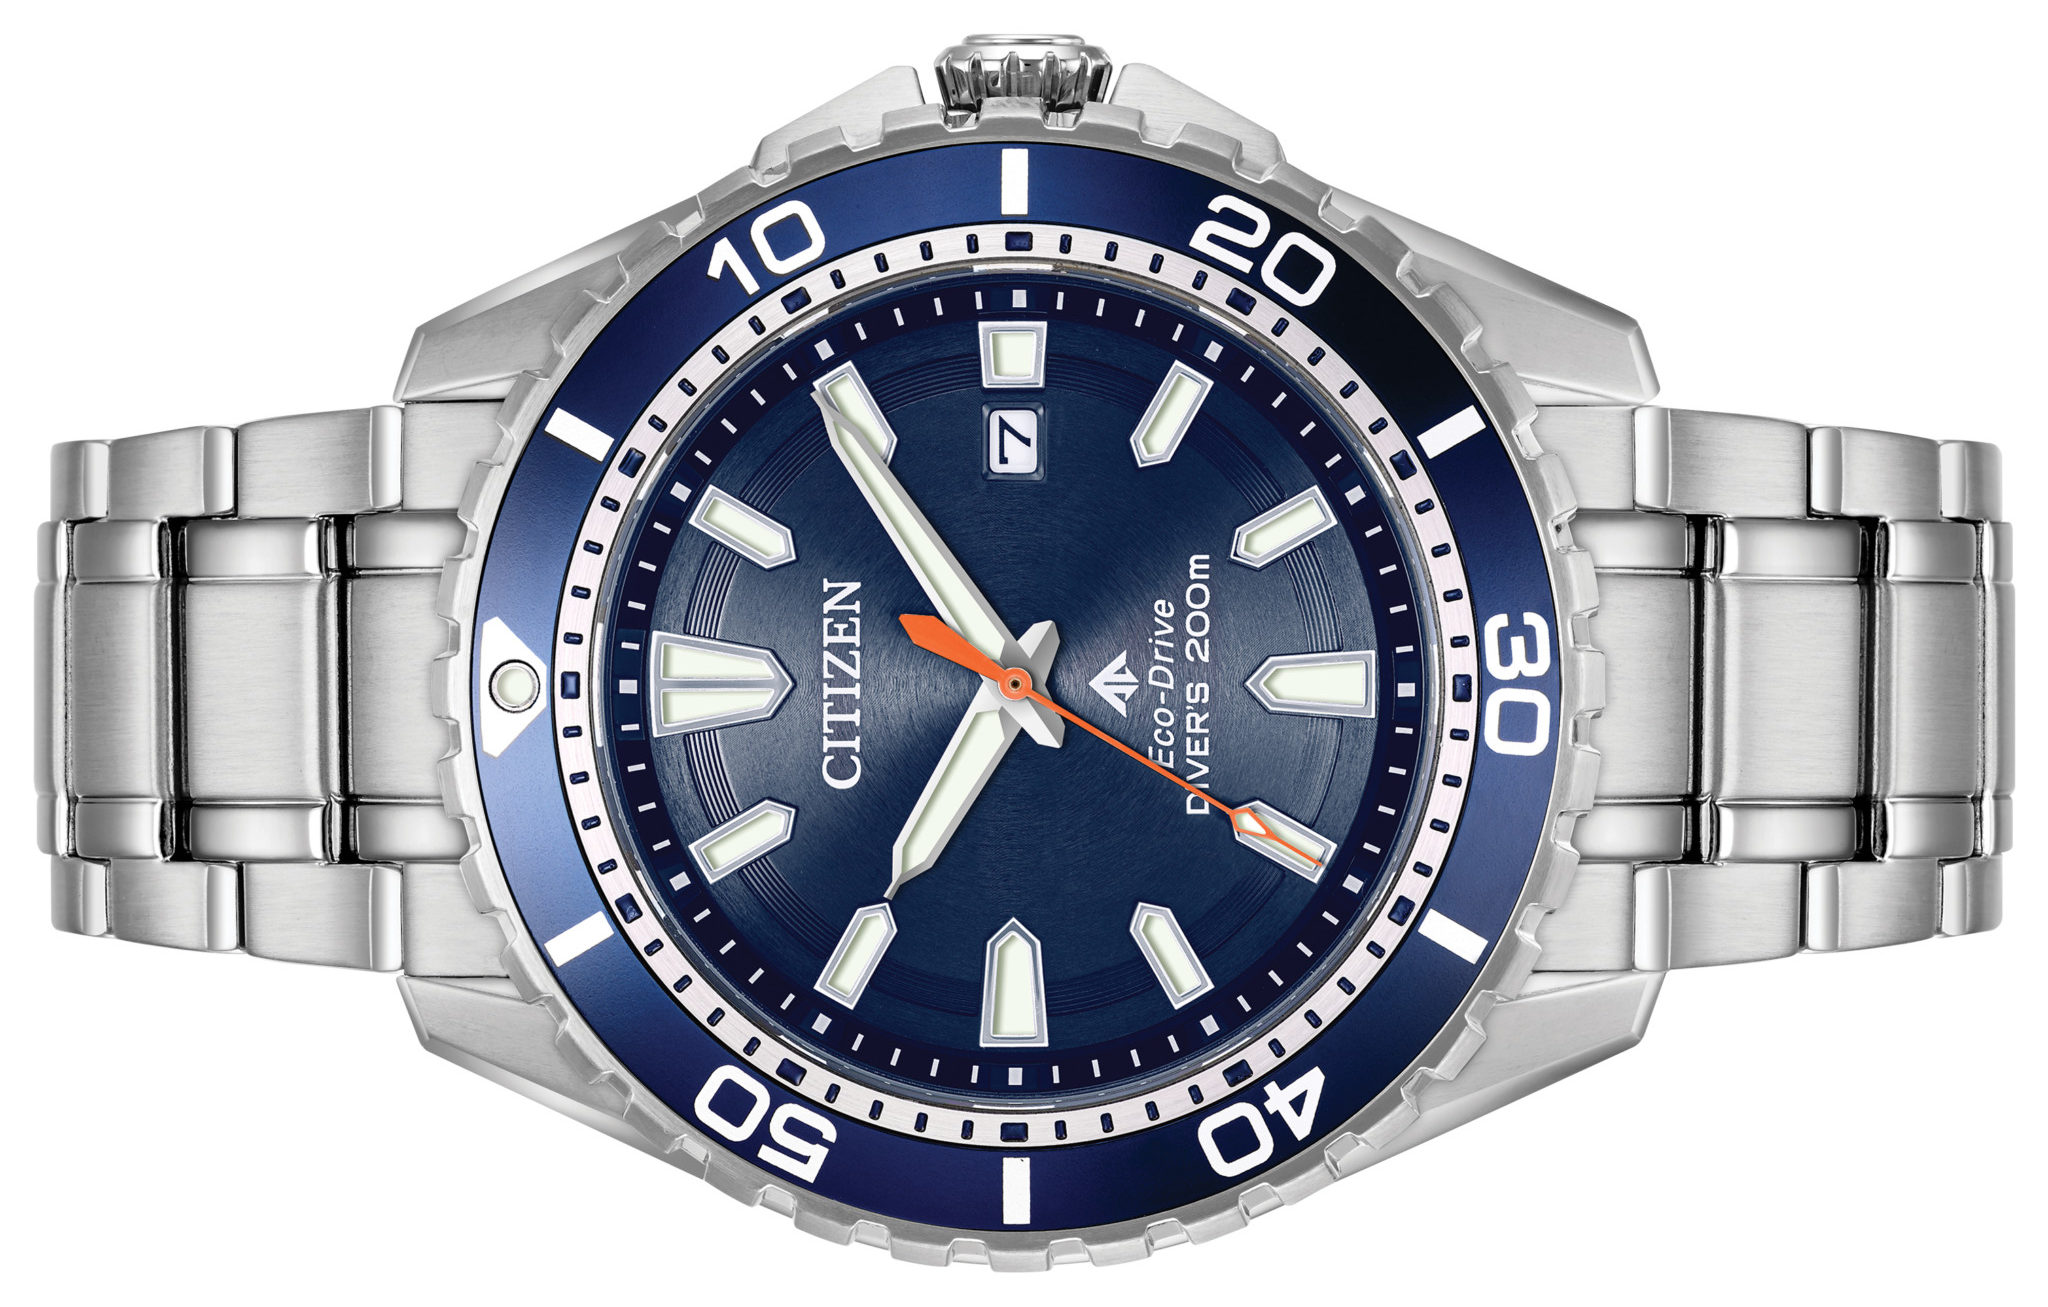 Quartz watches of the year citizen promaster diver watchpro - Citizen promaster dive watch ...